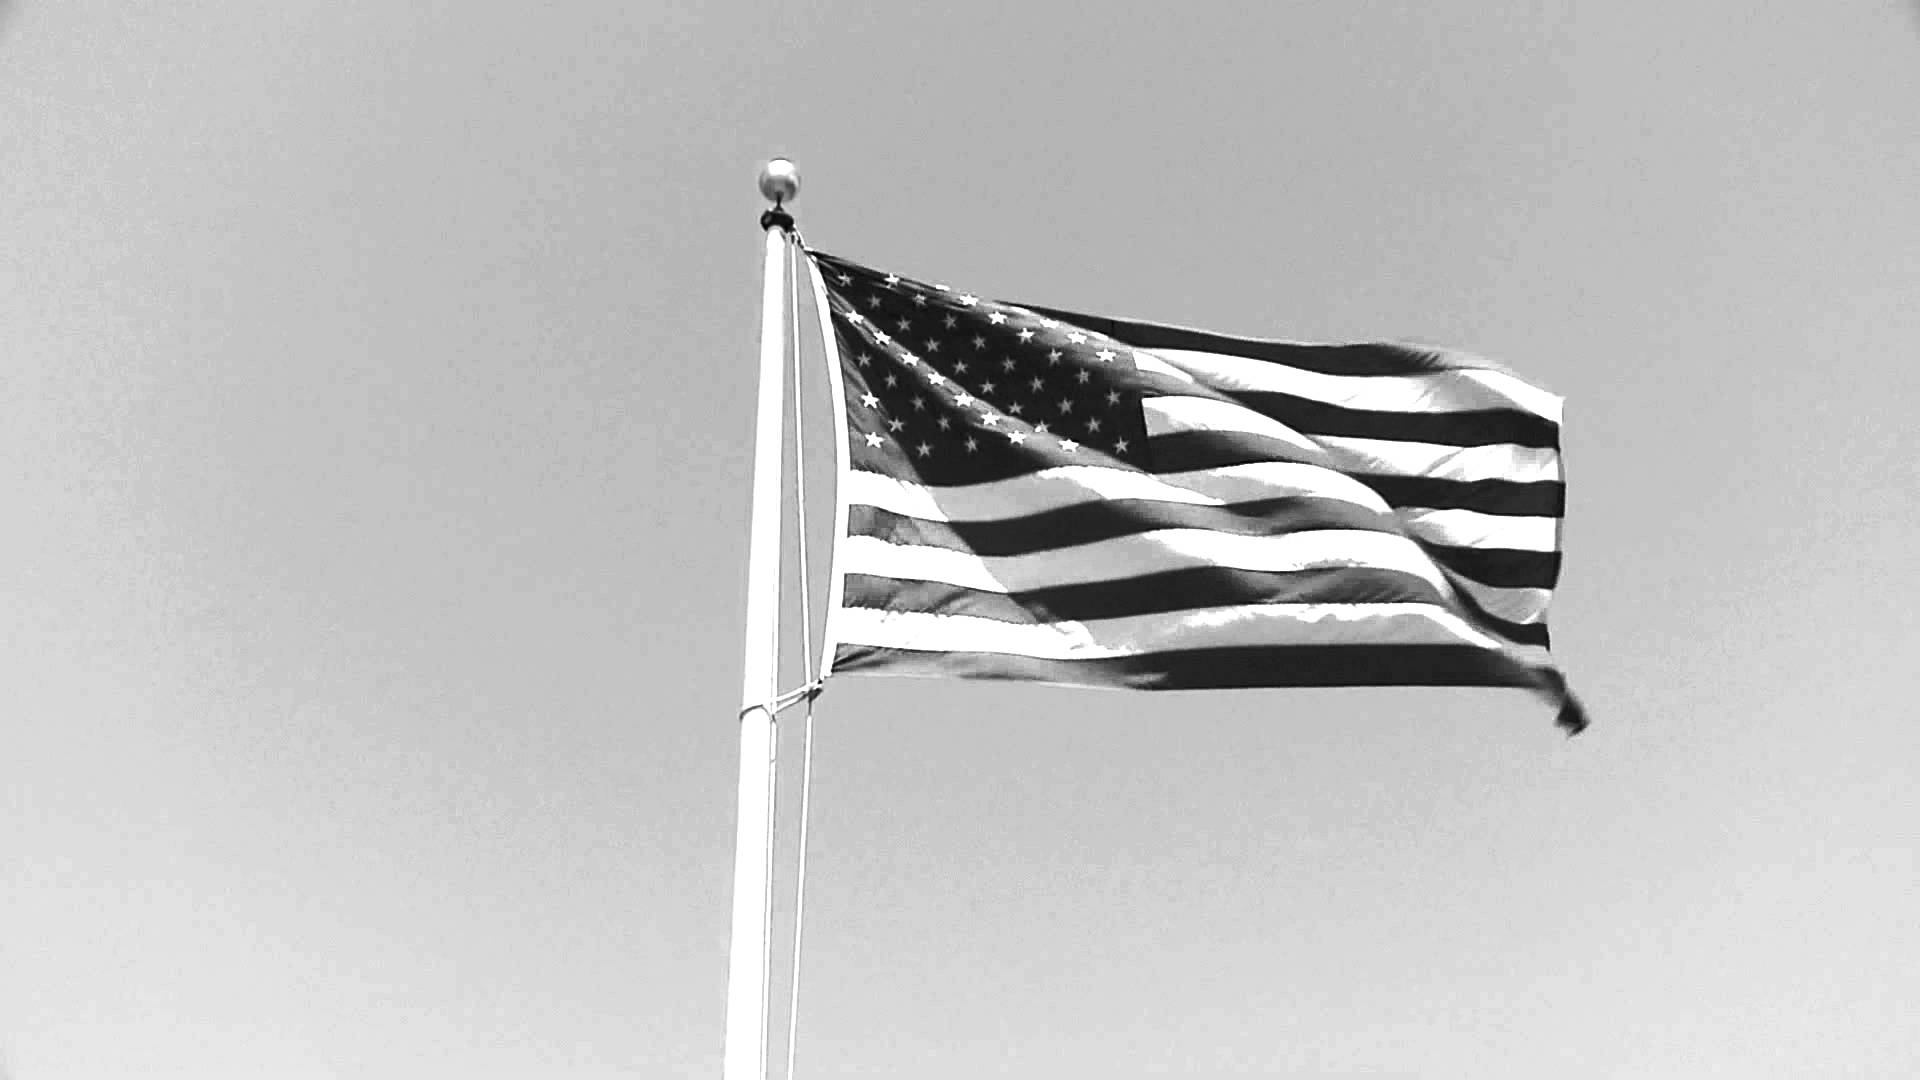 1920x1080 The American Flag [Black and White] - YouTube